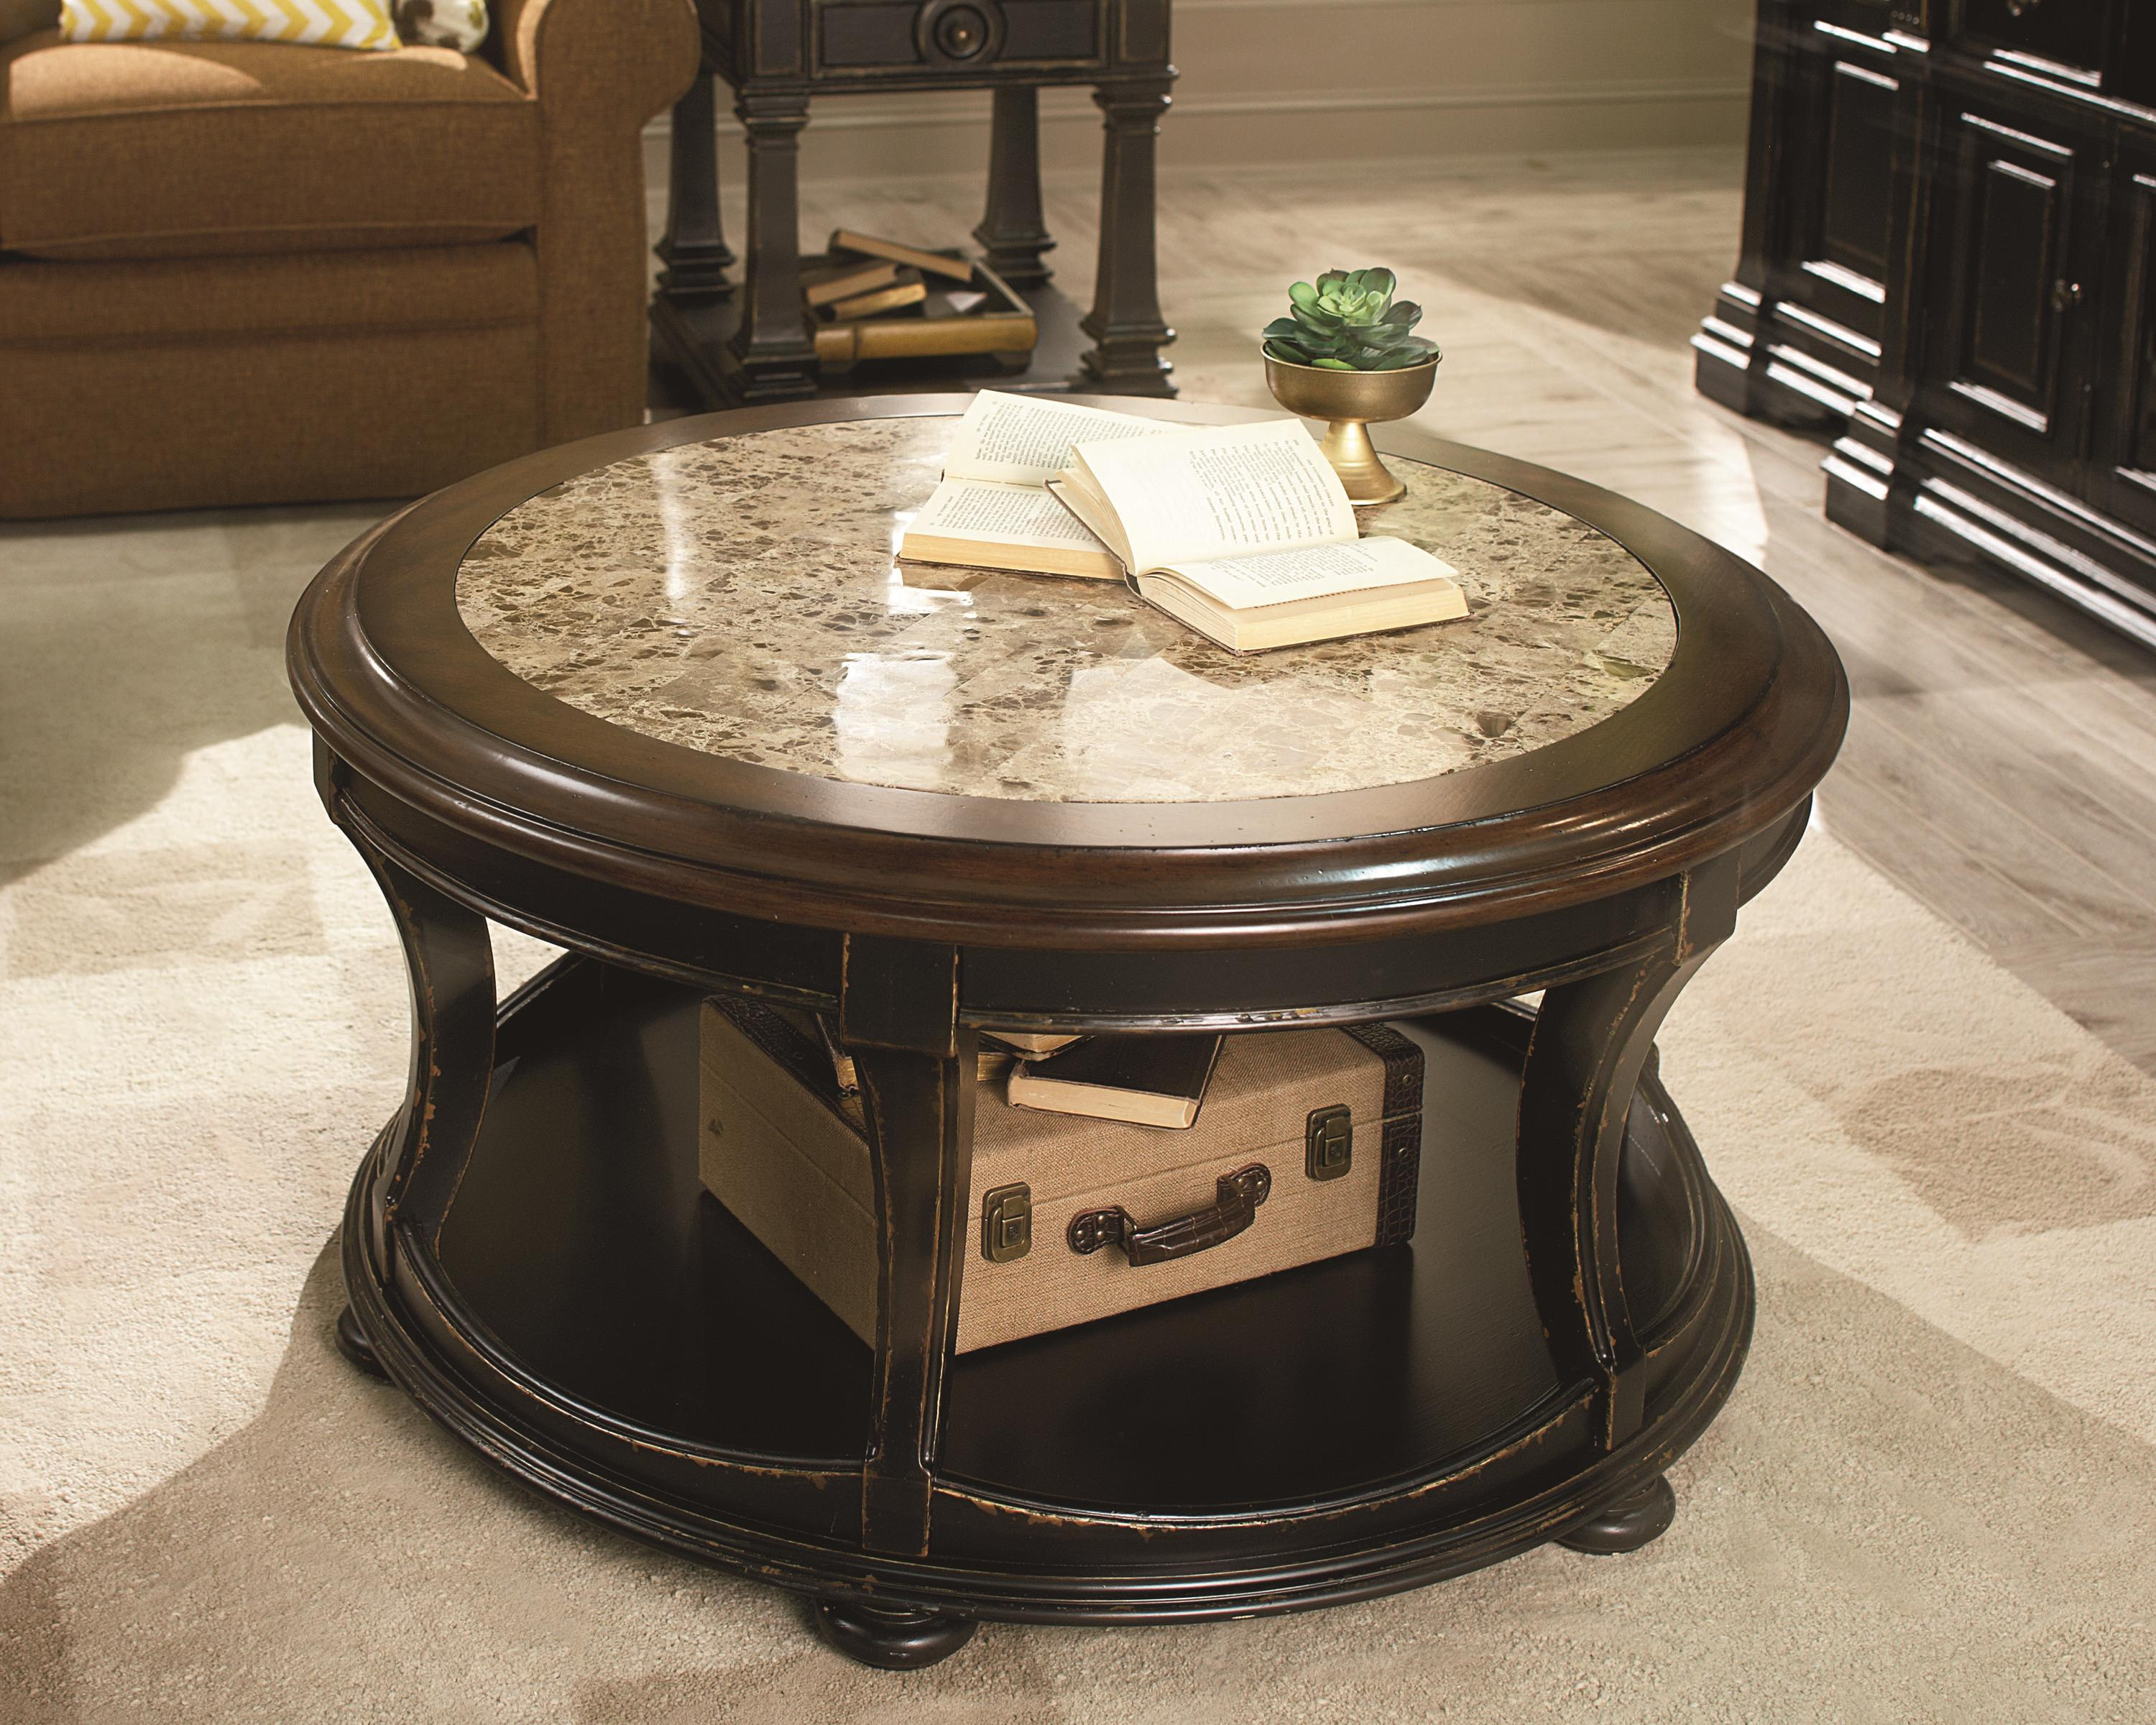 Round Cocktail Table With Top Stone Inlay By Hammary Wolf And Gardiner Wolf Furniture